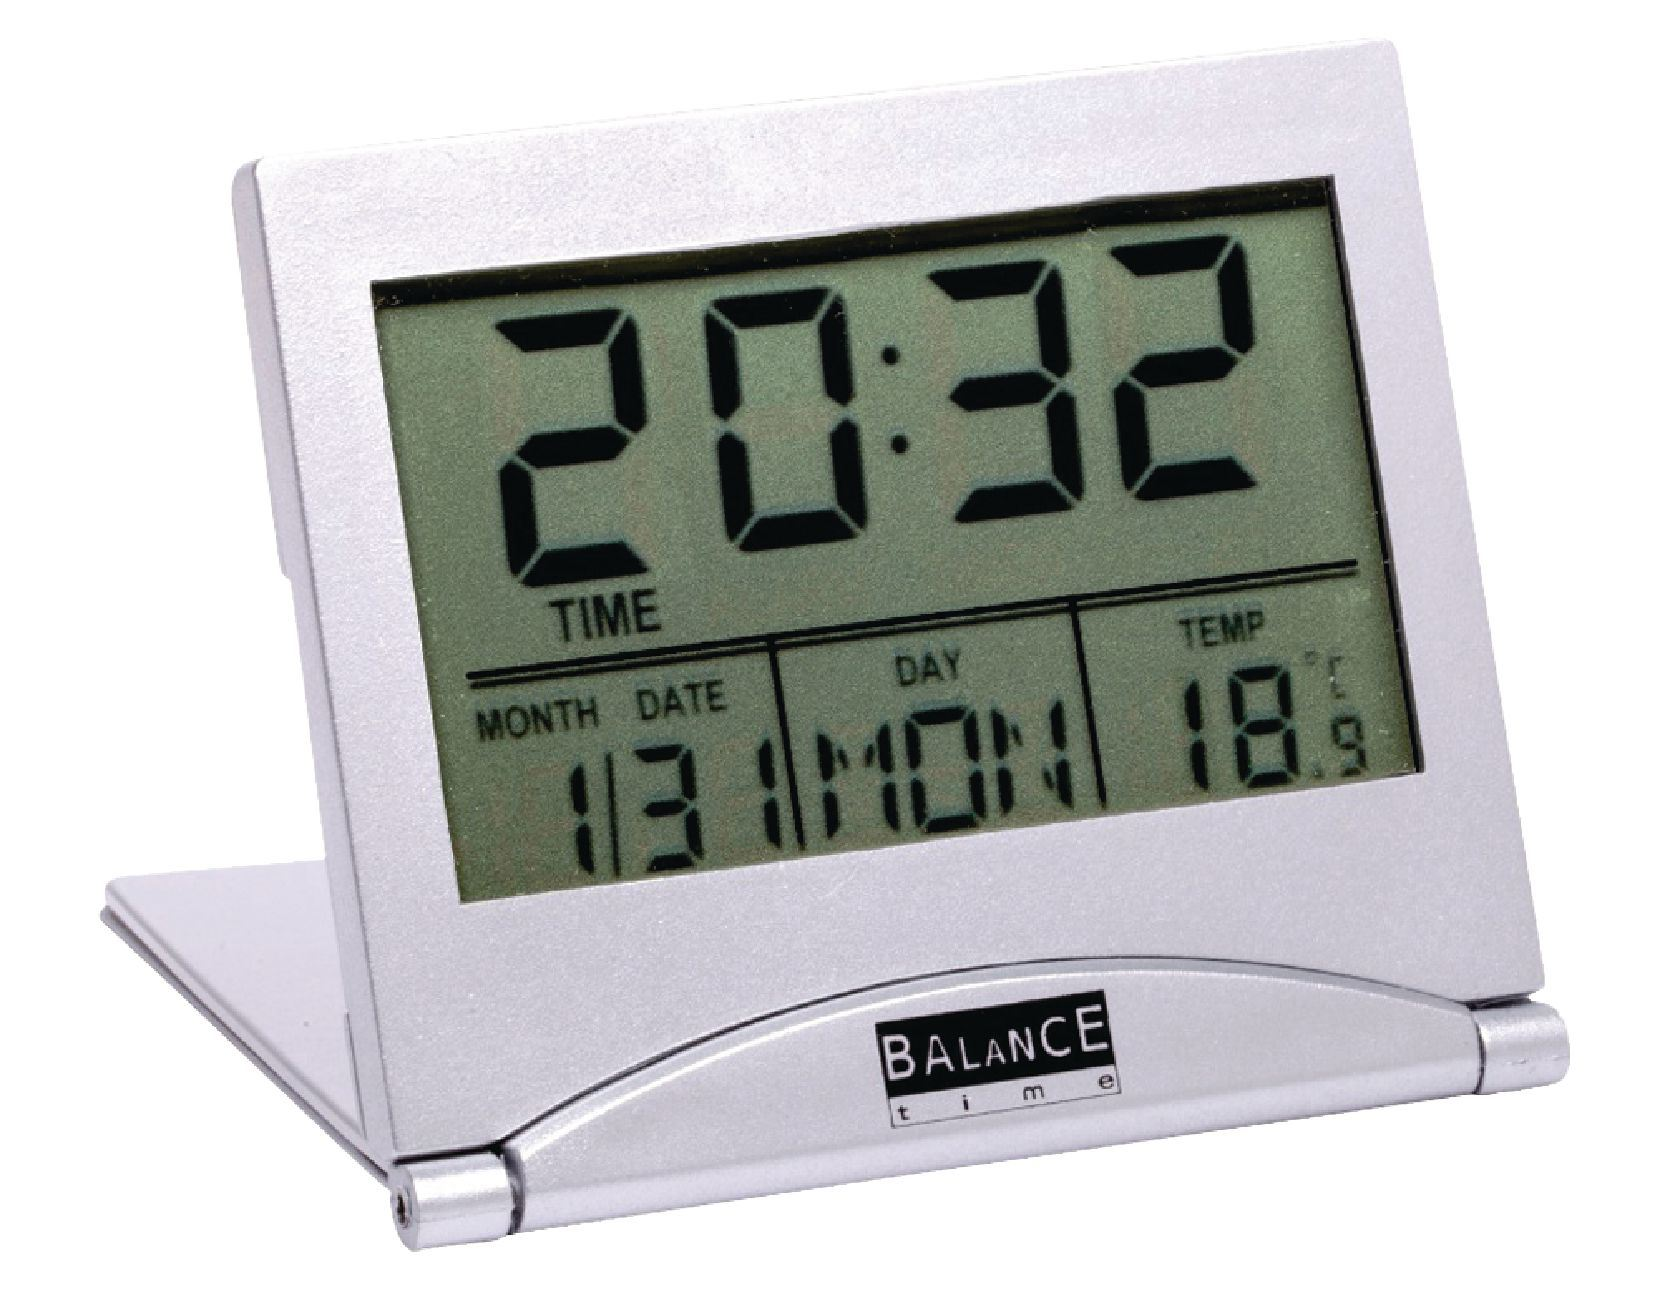 balance digital lcd travel alarm clock with temperature day month display ebay. Black Bedroom Furniture Sets. Home Design Ideas